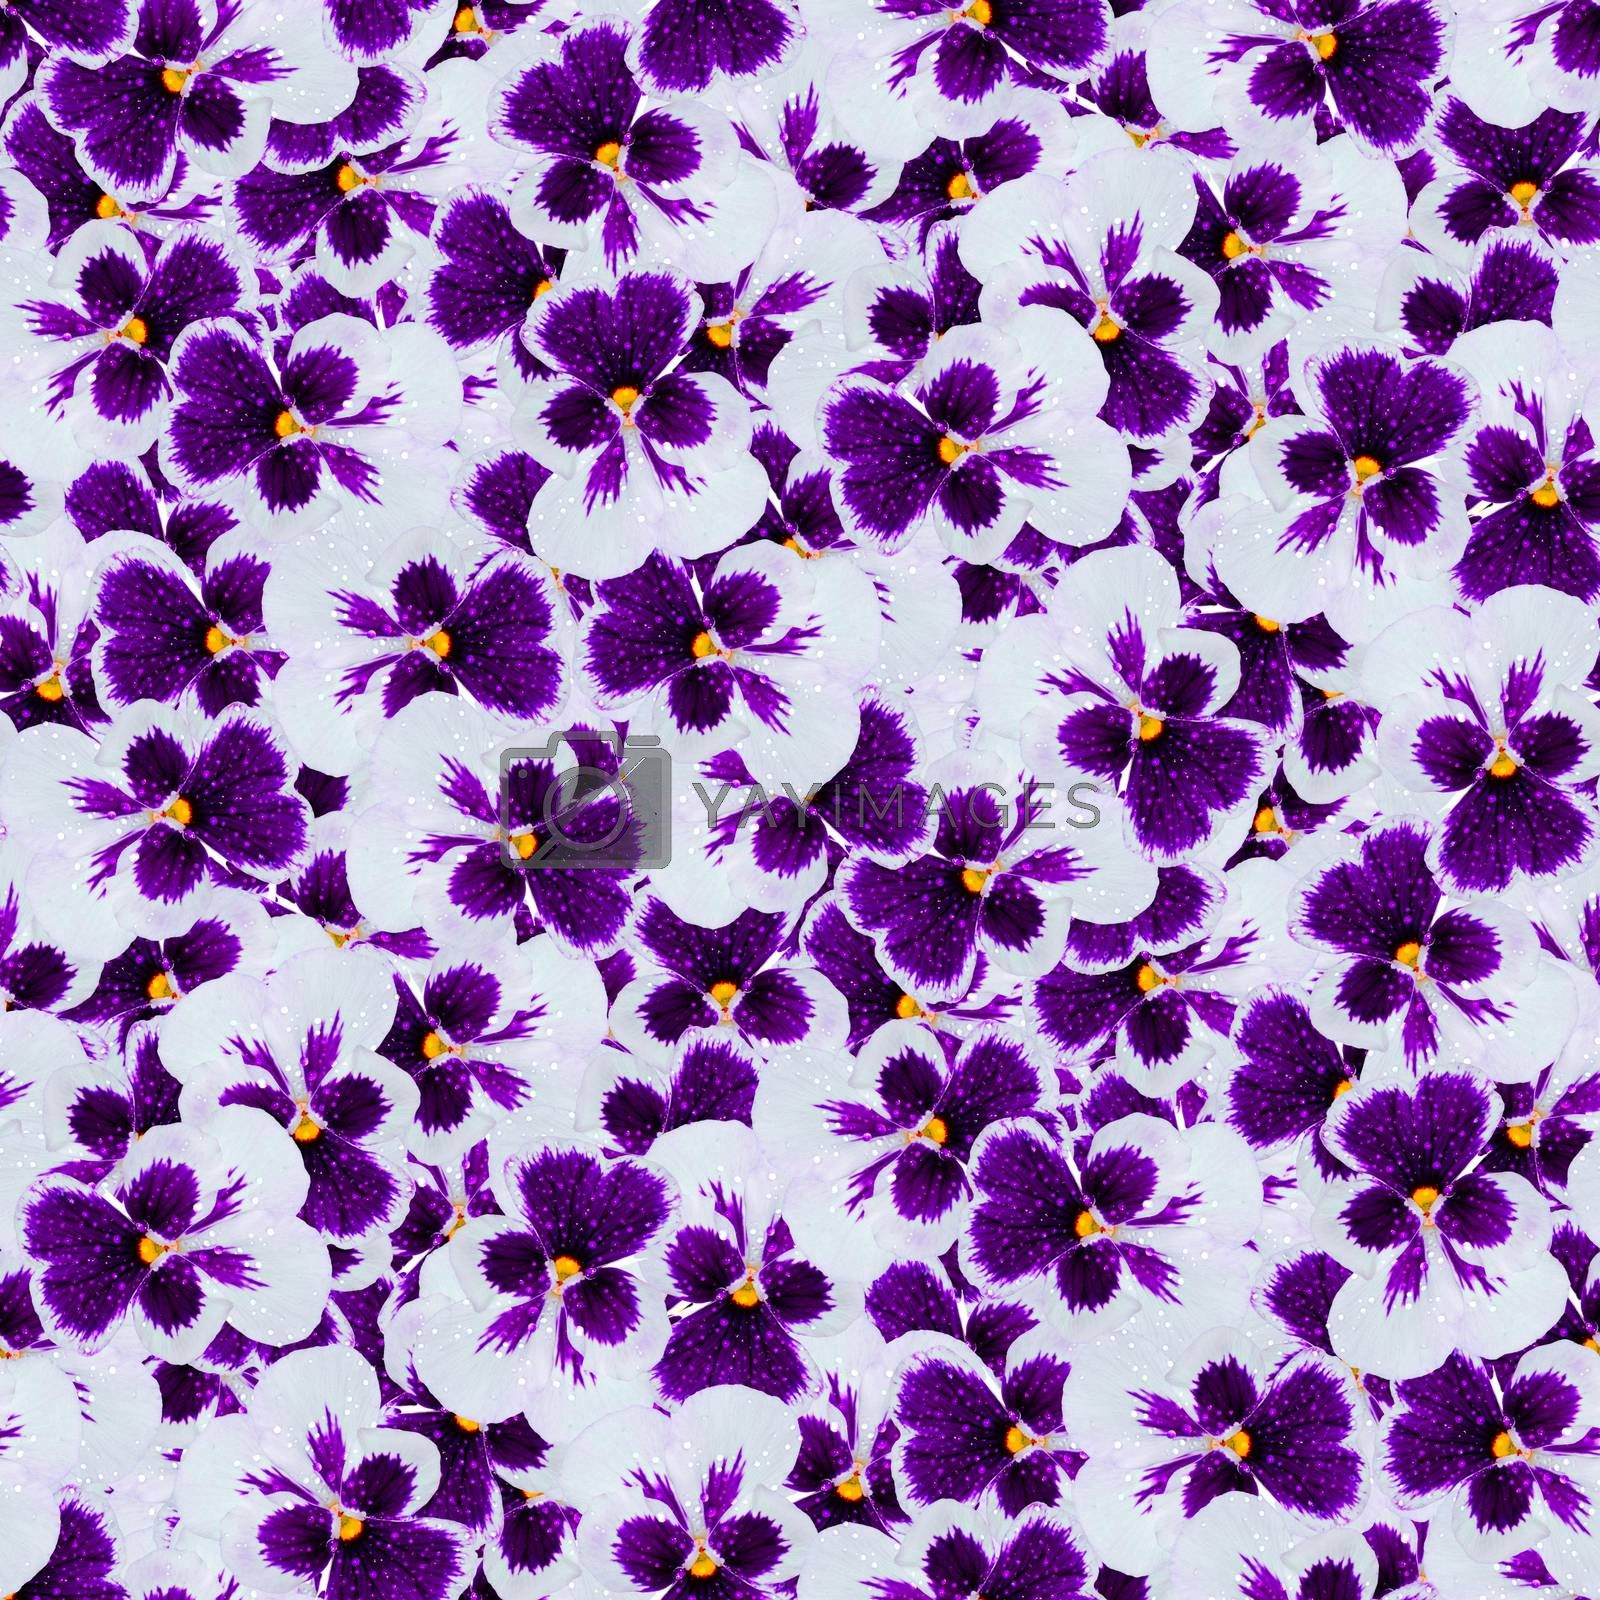 texture of a seamless pattern with colors. blue pansies decorative design elements by kamrad71